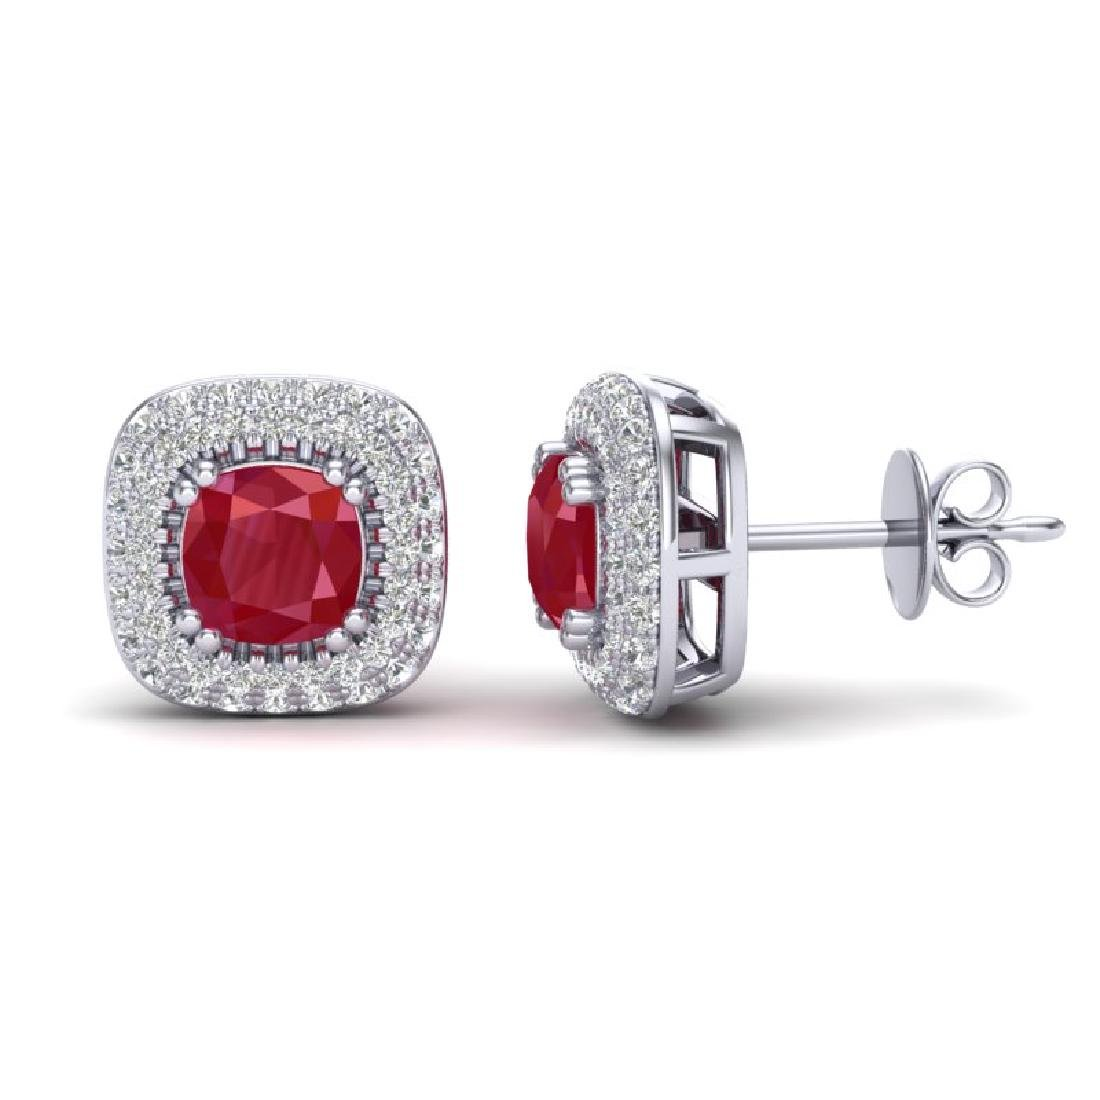 2.16 CTW Ruby & Micro VS/SI Diamond Earrings Solitaire - 2